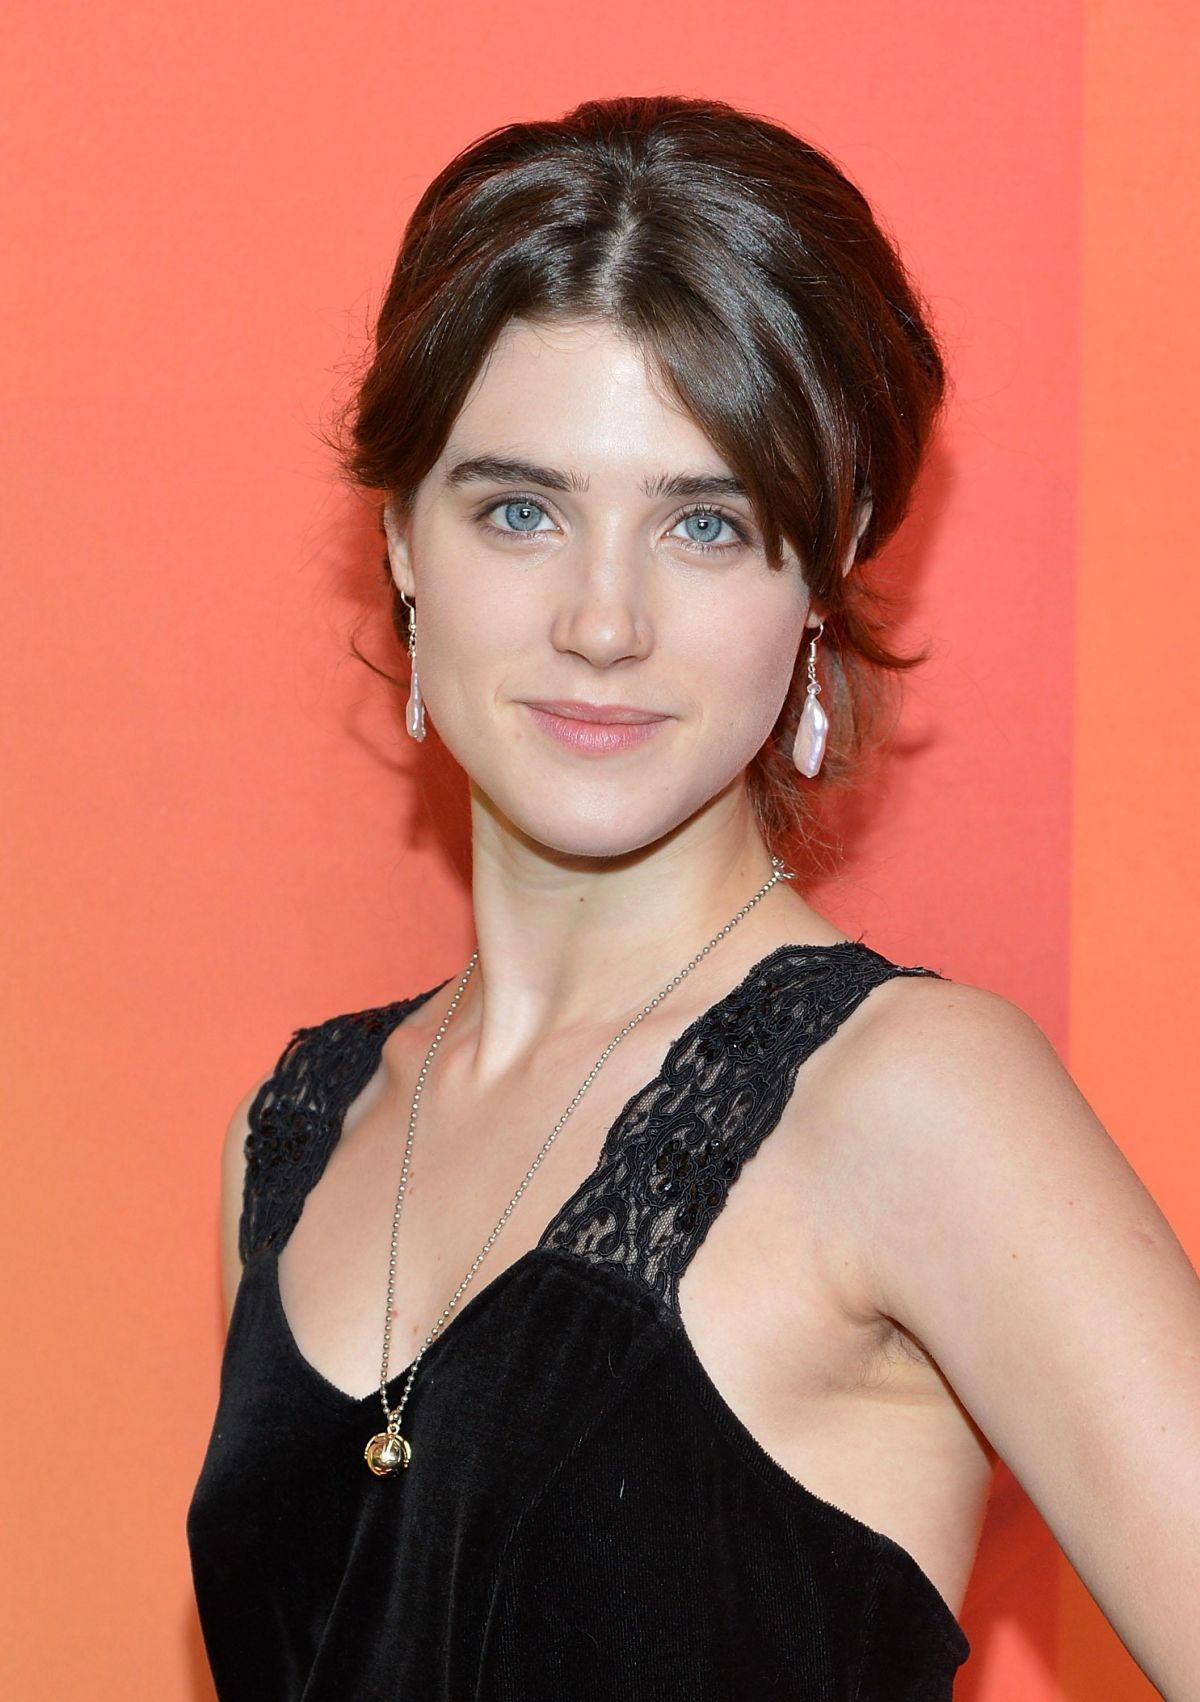 lucy griffiths modellucy griffiths instagram, lucy griffiths vk, lucy griffiths model, lucy griffiths preacher, lucy griffiths robin hood, lucy griffiths imdb, lucy griffiths linkedin, lucy griffiths wiki, lucy griffiths facebook, lucy griffiths twitter, lucy griffiths alexander skarsgard, lucy griffiths, lucy griffiths constantine, lucy griffiths boyfriend, lucy griffiths 2015, lucy griffiths fansite, lucy griffiths height, lucy griffiths gallery